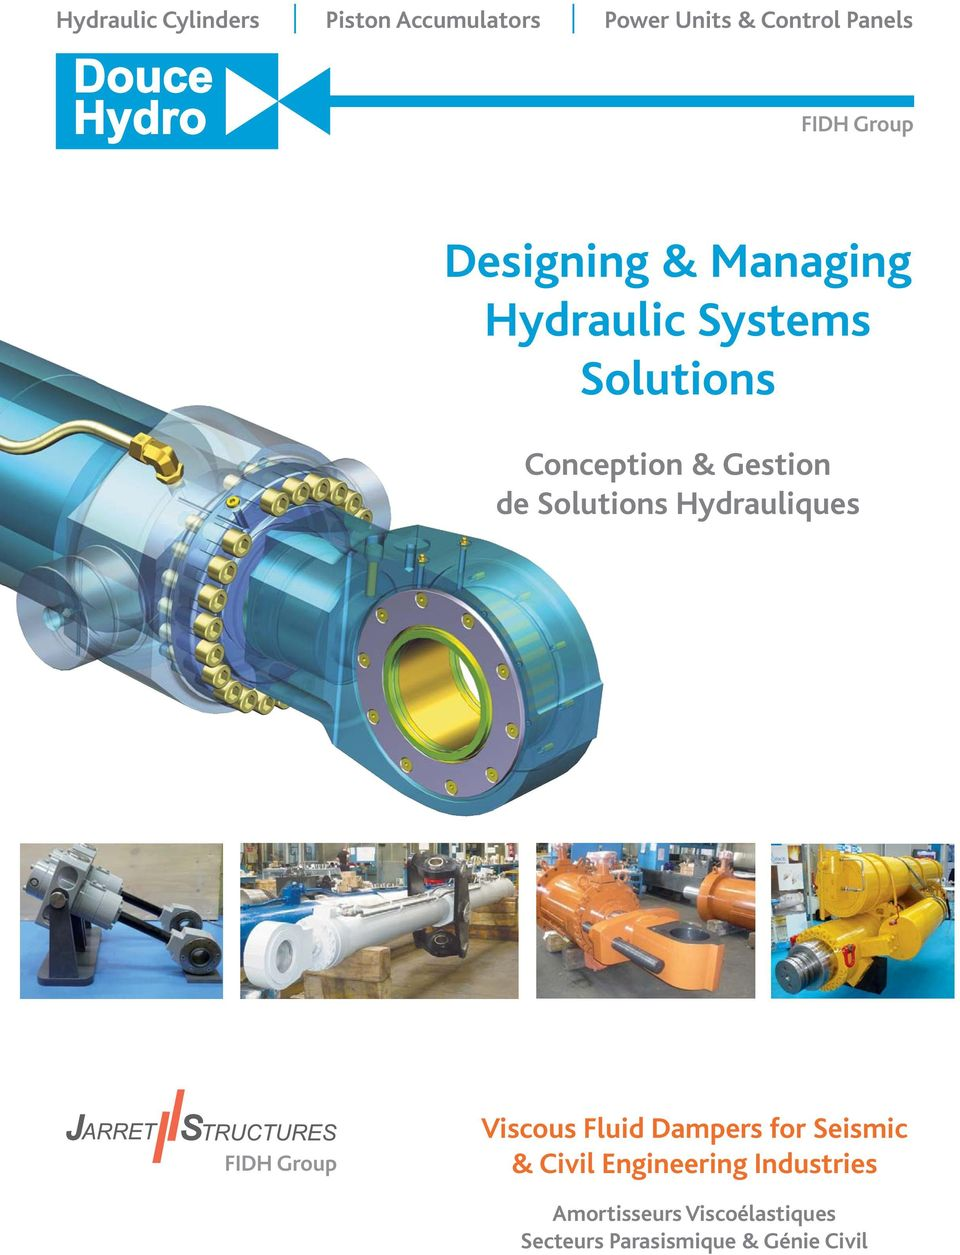 Solutions Hydrauliques FIDH Group Viscous Fluid Dampers for Seismic & Civil